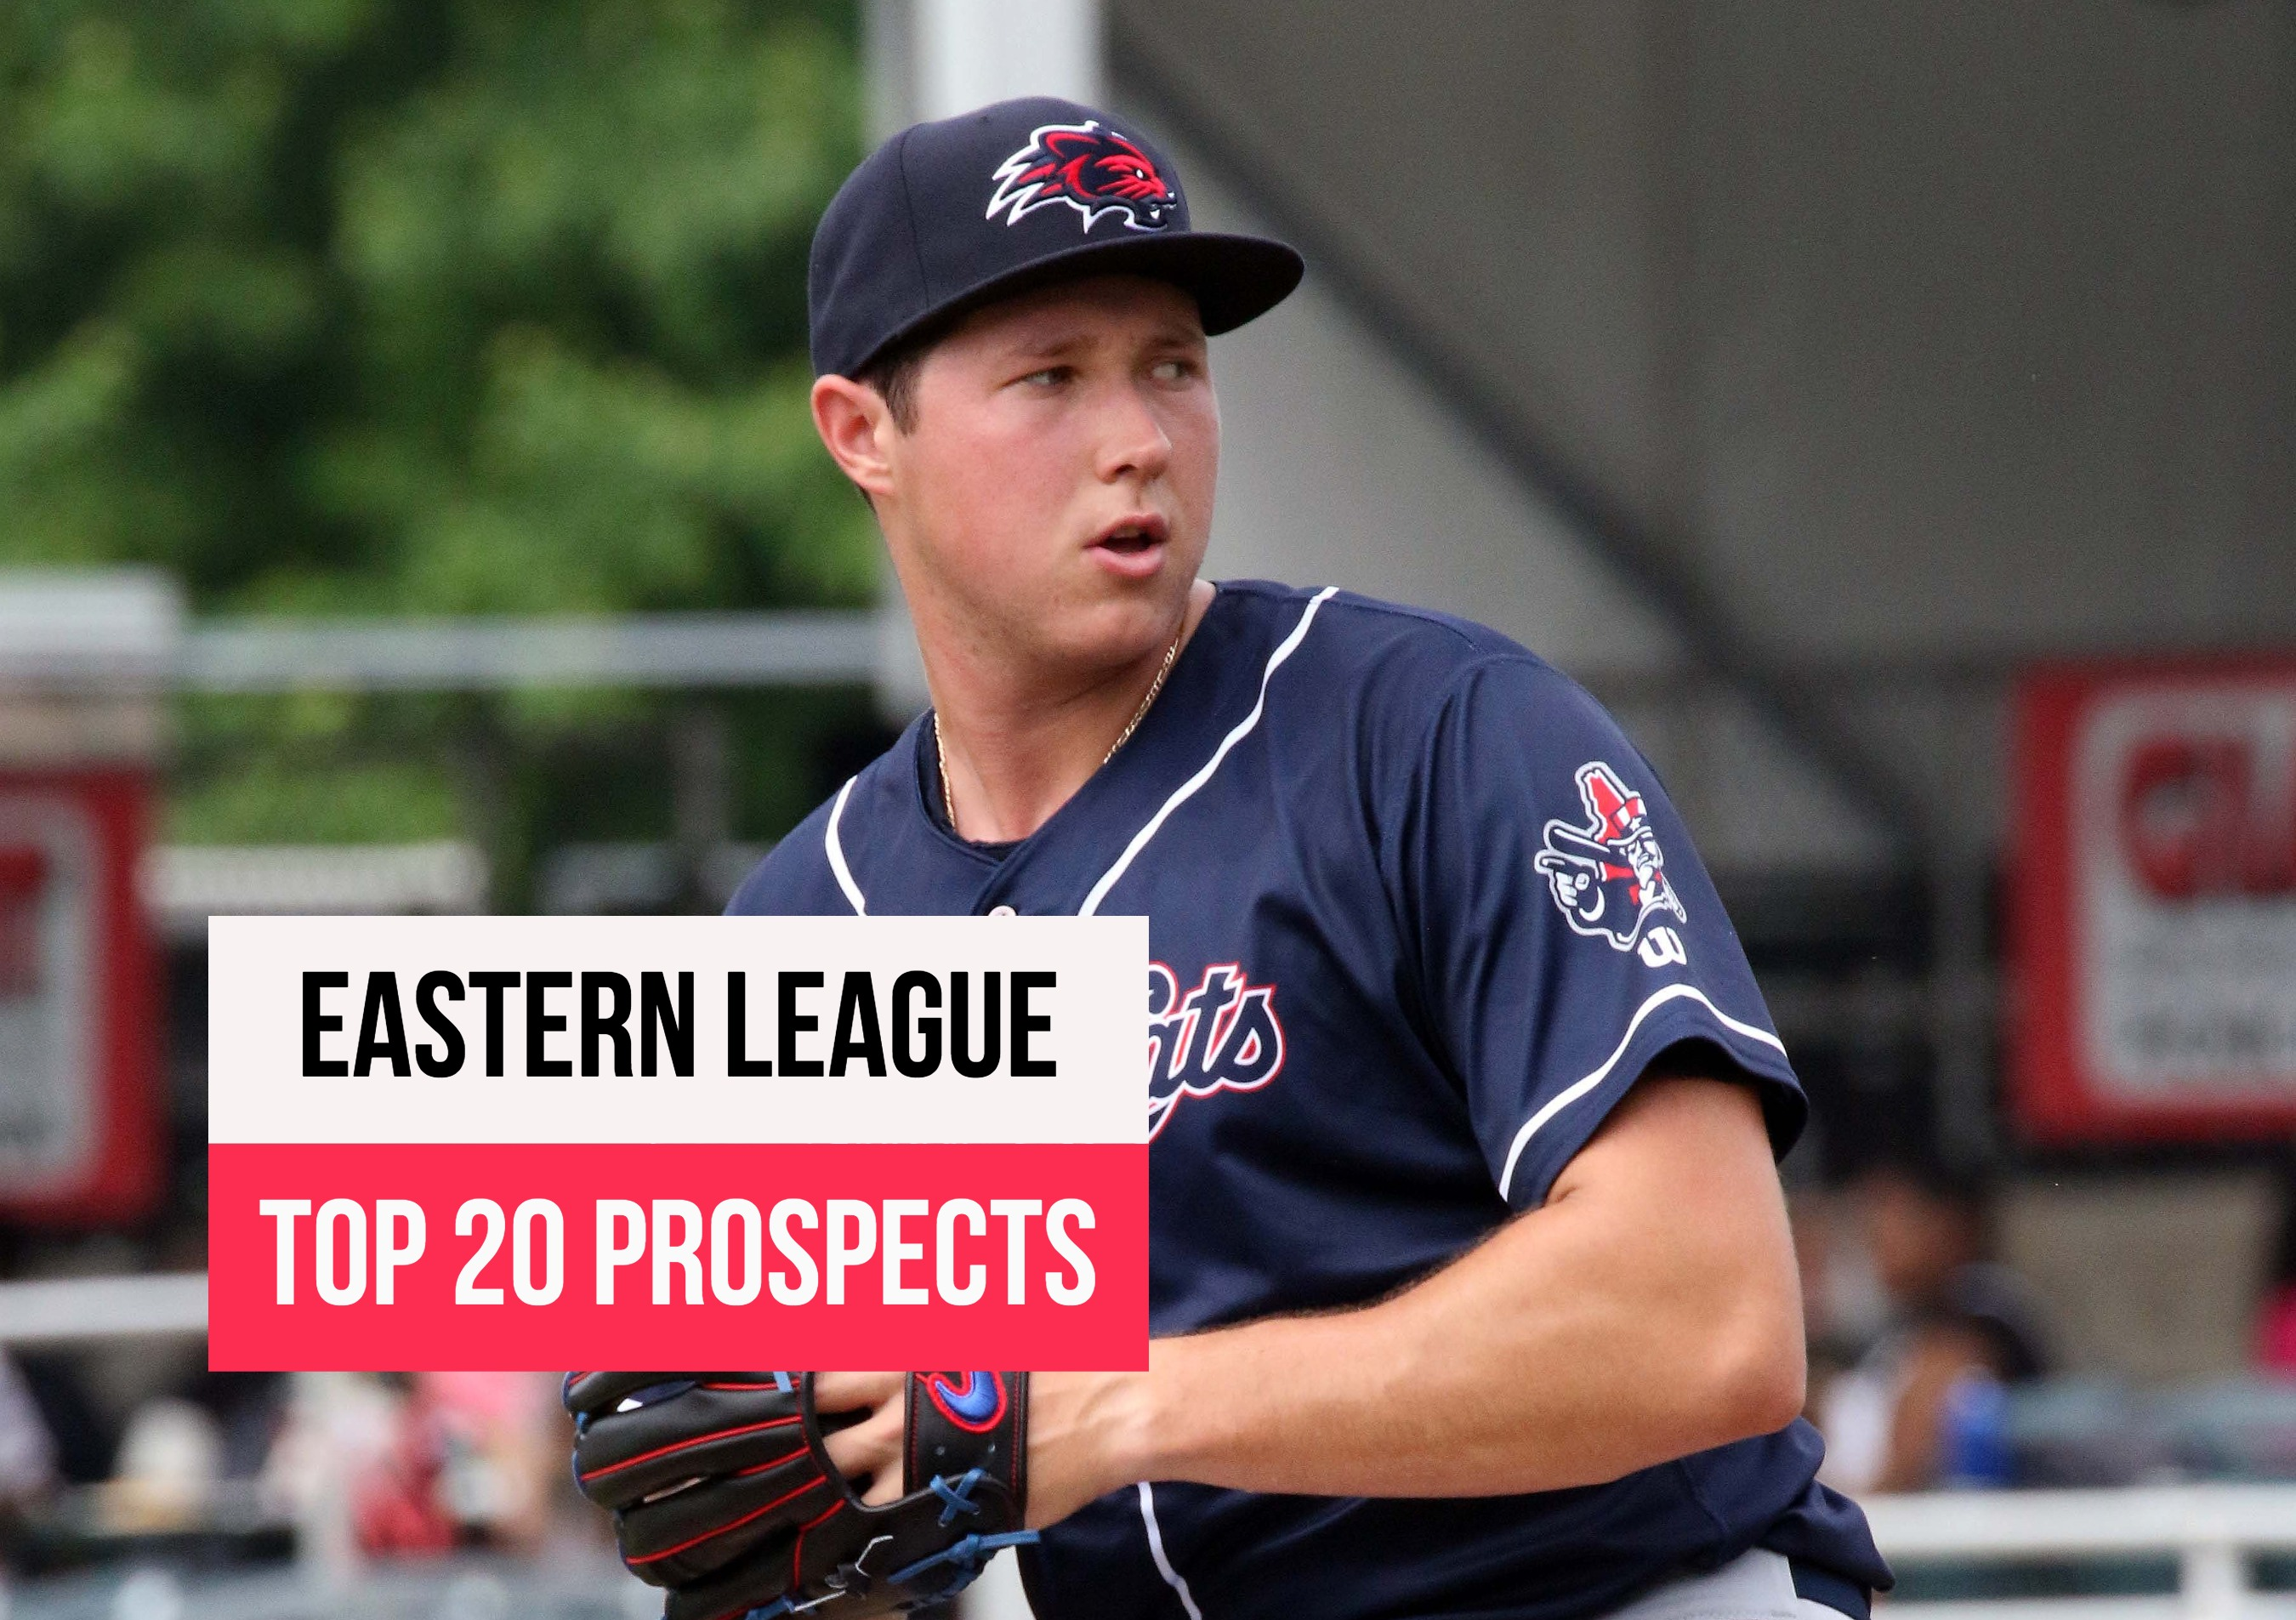 Eastern League Top 20 Prospects For 2019